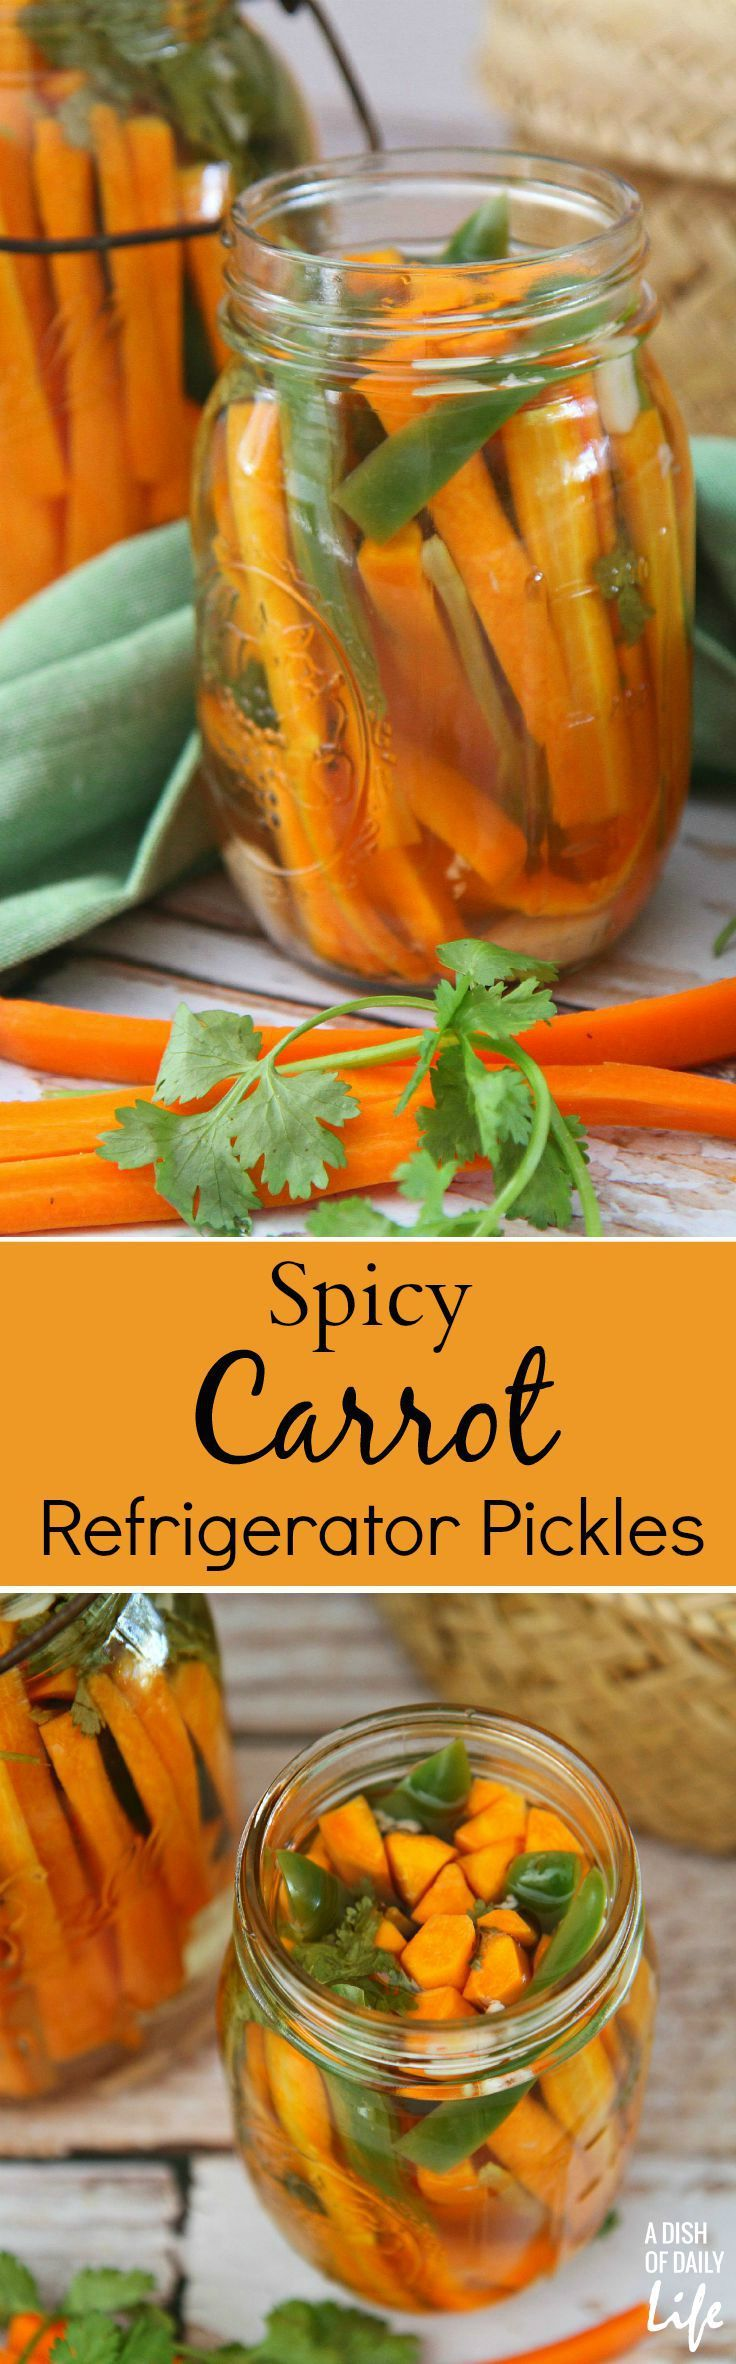 Like Mexican carrots? This spicy carrot refrigerator pickles recipe is easy to make, and will satisfy your hot spicy pickles craving!